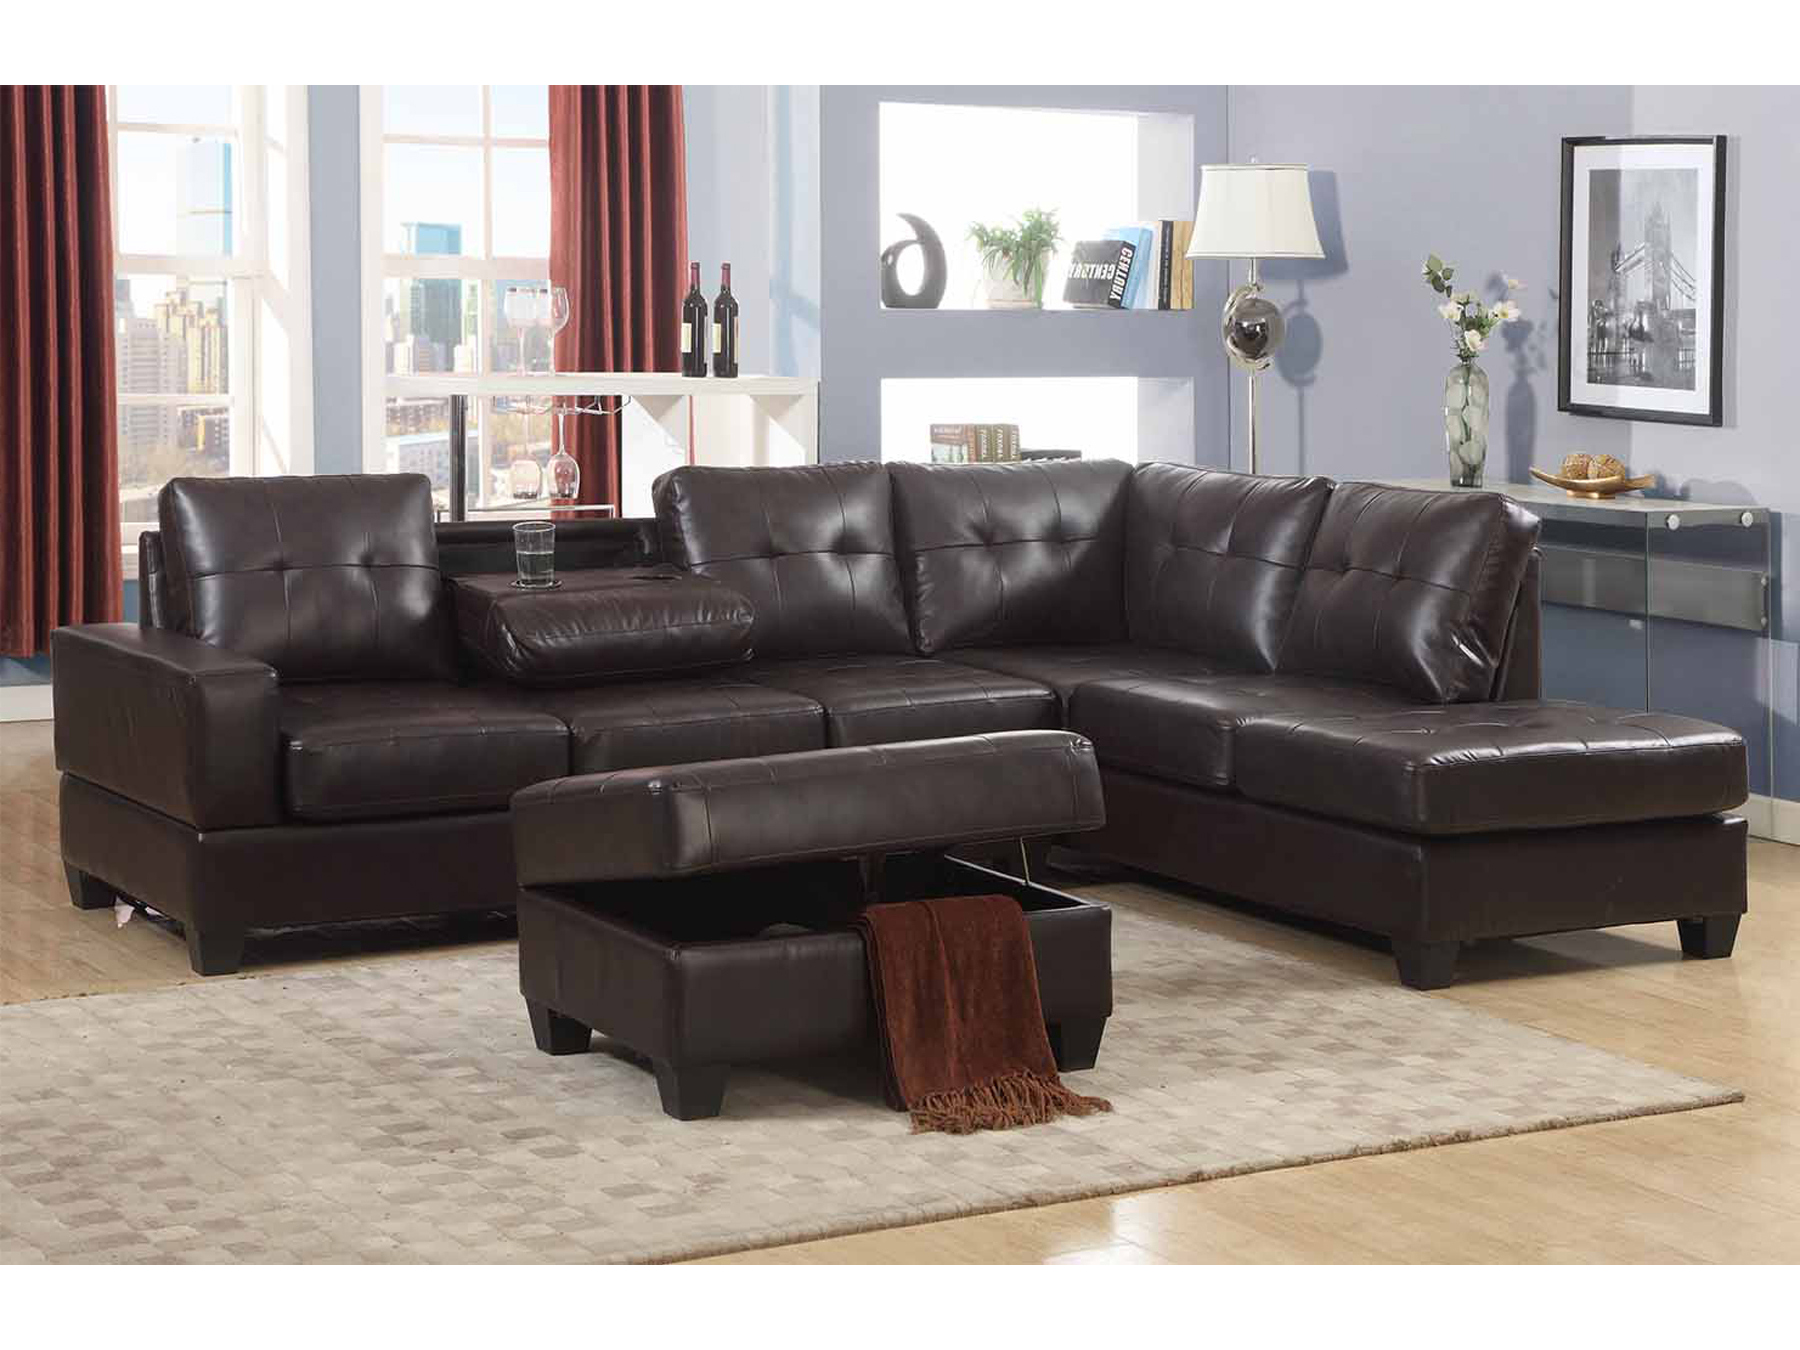 Emily 3 Pc Dark Brown Faux Leather Reversal Sectional Sofa Set With